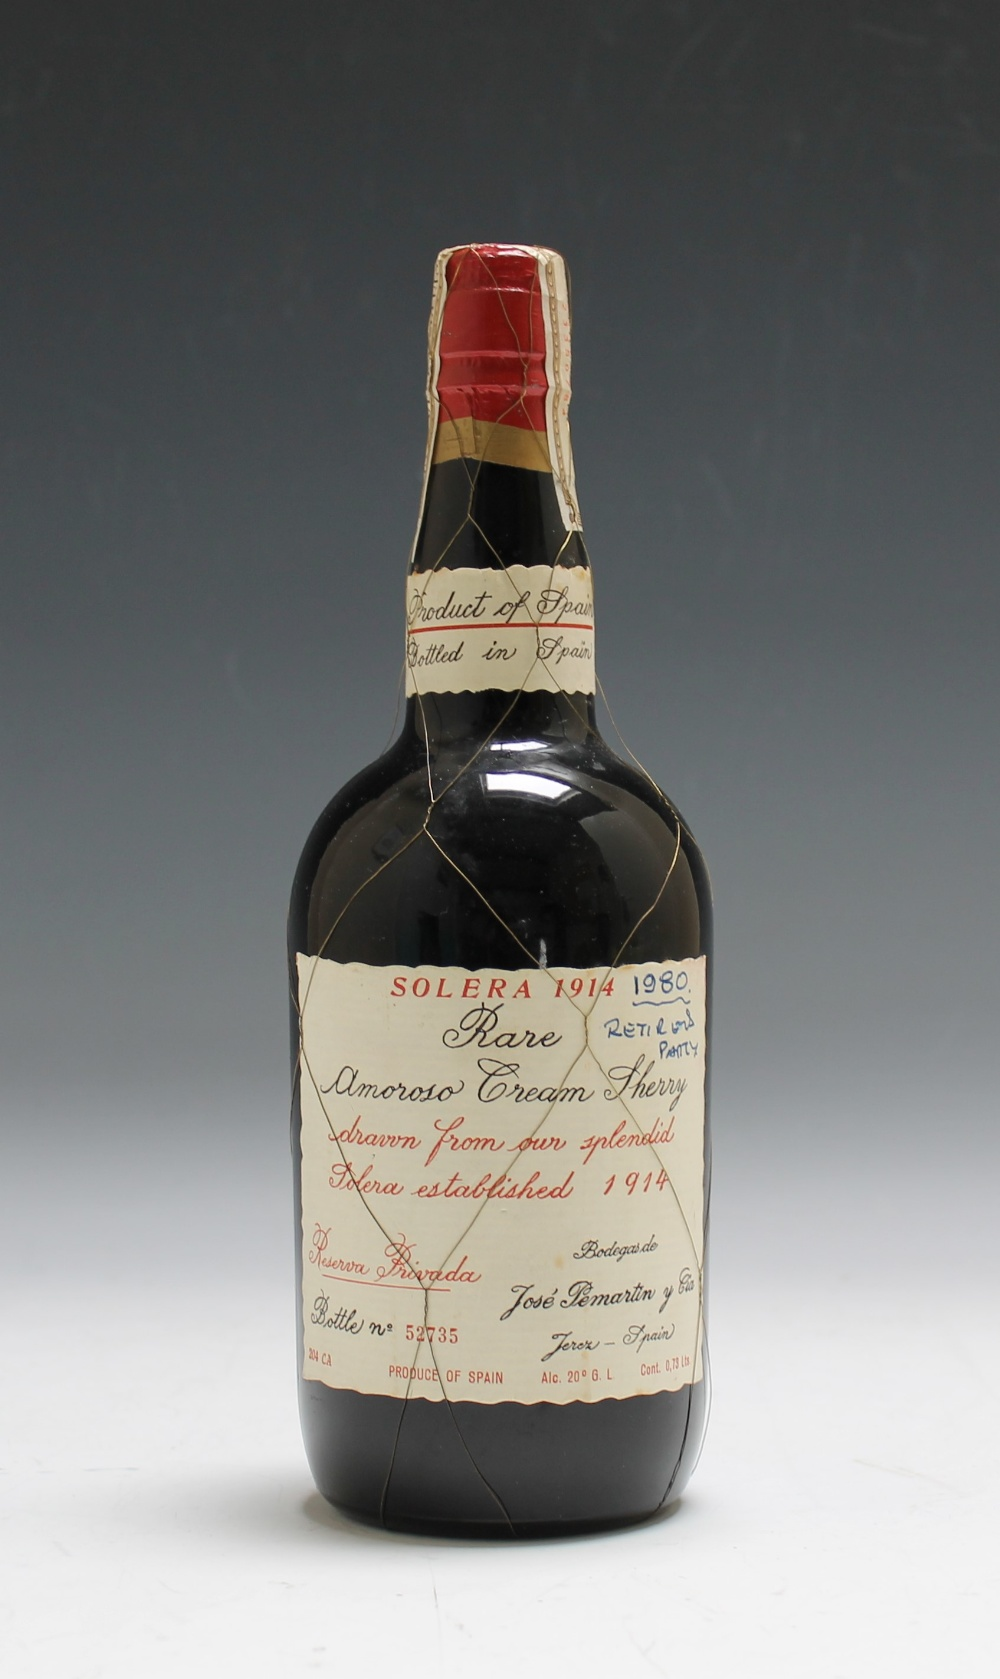 Lot 804 - 1 BOTTLE OF SOLERA 1914 RARE AMOROSO CREAM SHERRY, drawn from 'our splendid Solera established 1914,